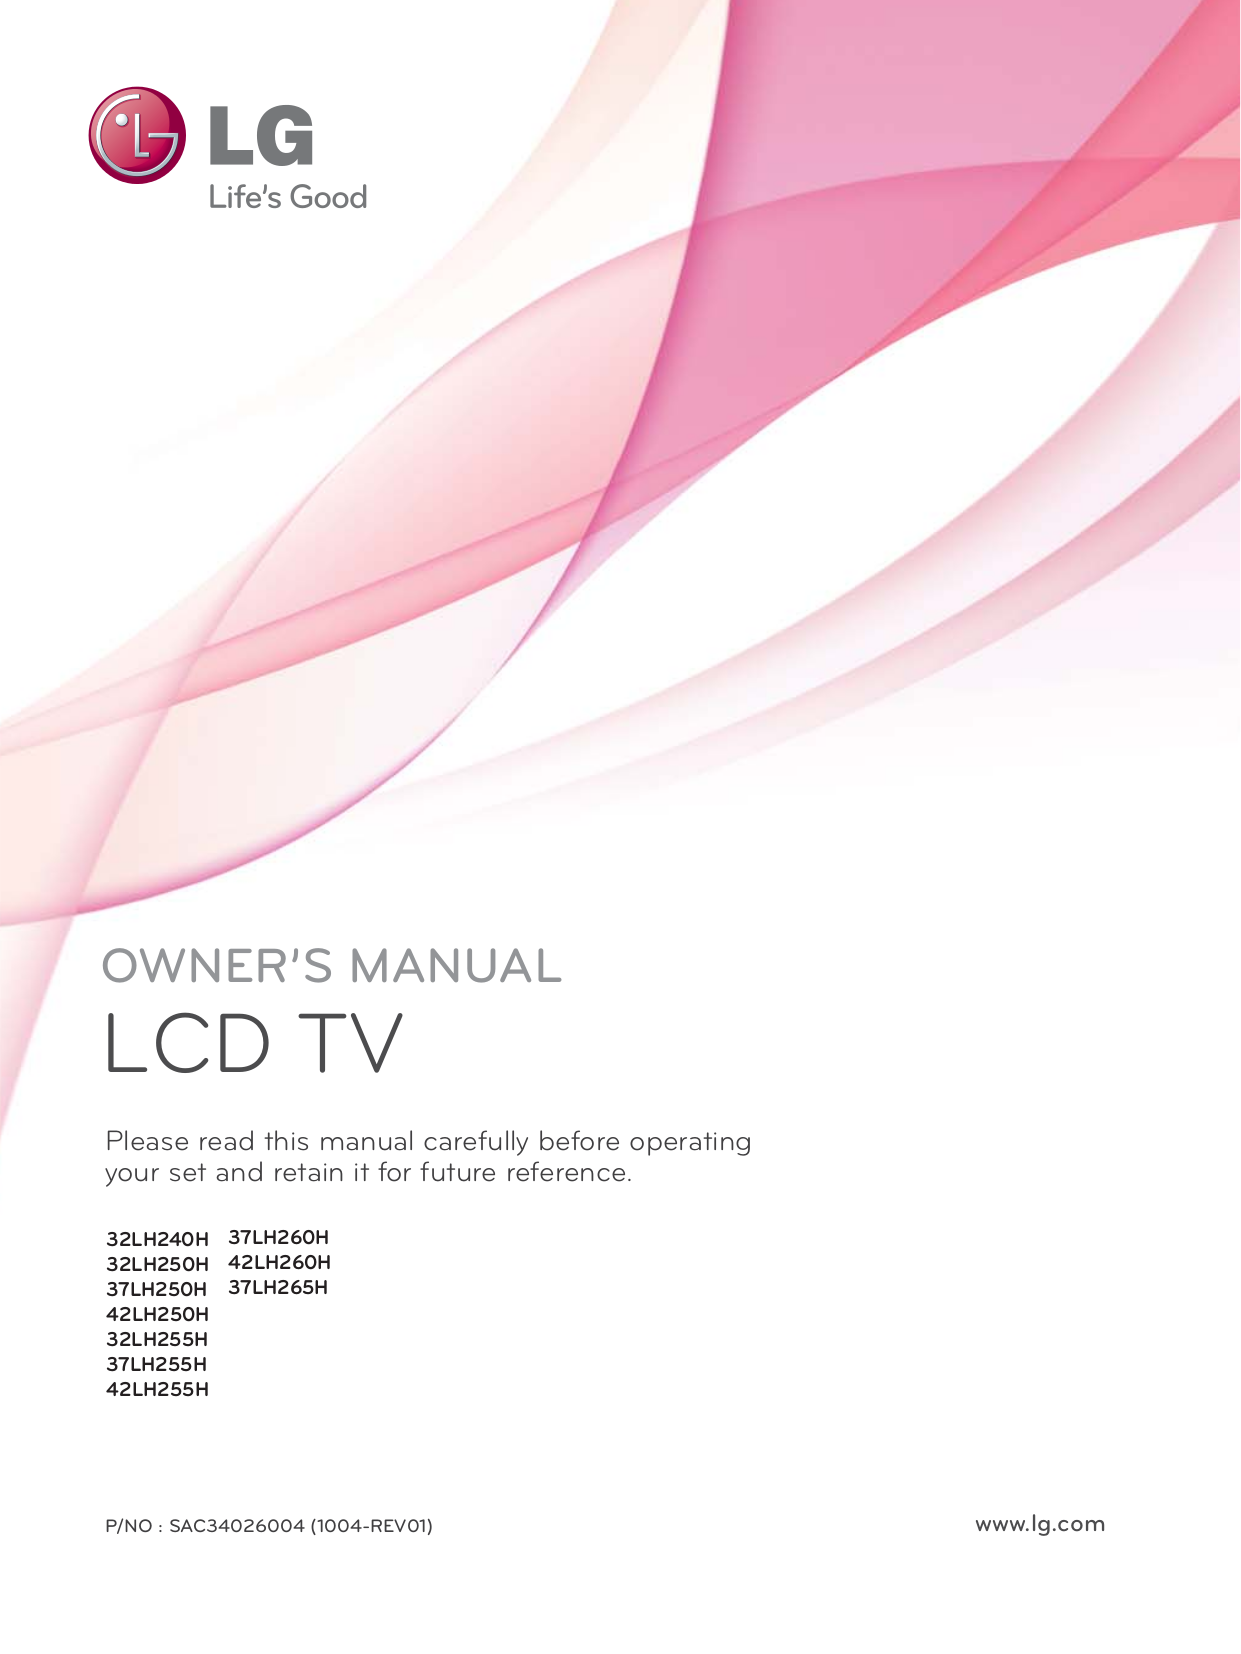 pdf for LG TV 42LH260H manual